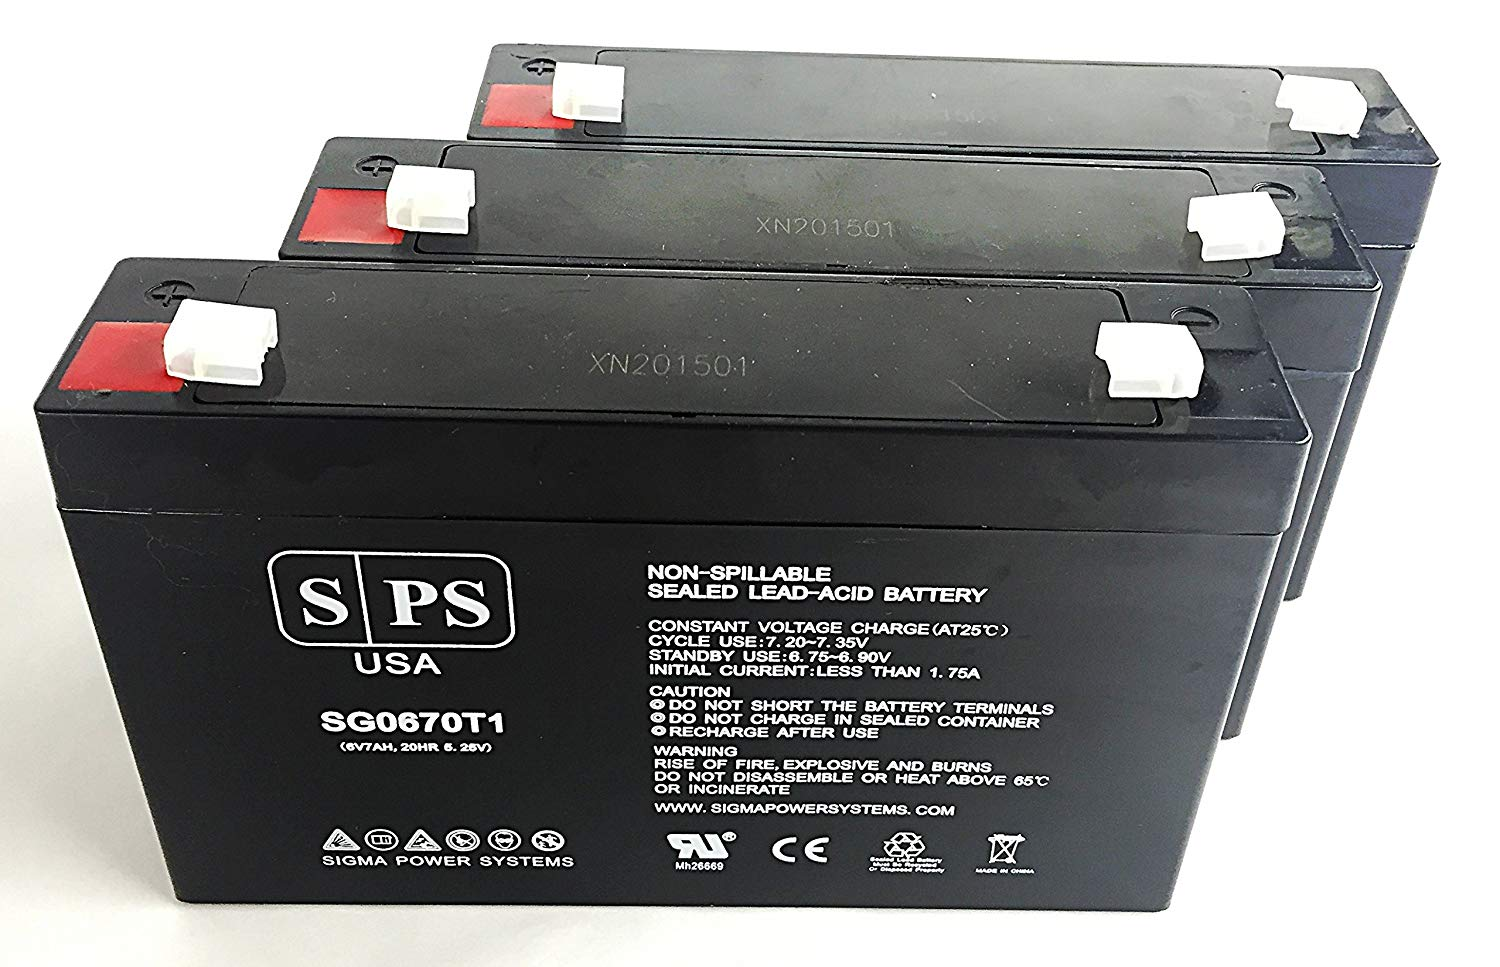 National Power GS016Q4 Emergency Light 6V 7Ah Replacement Battery -SPS BRAND (3 PACK)